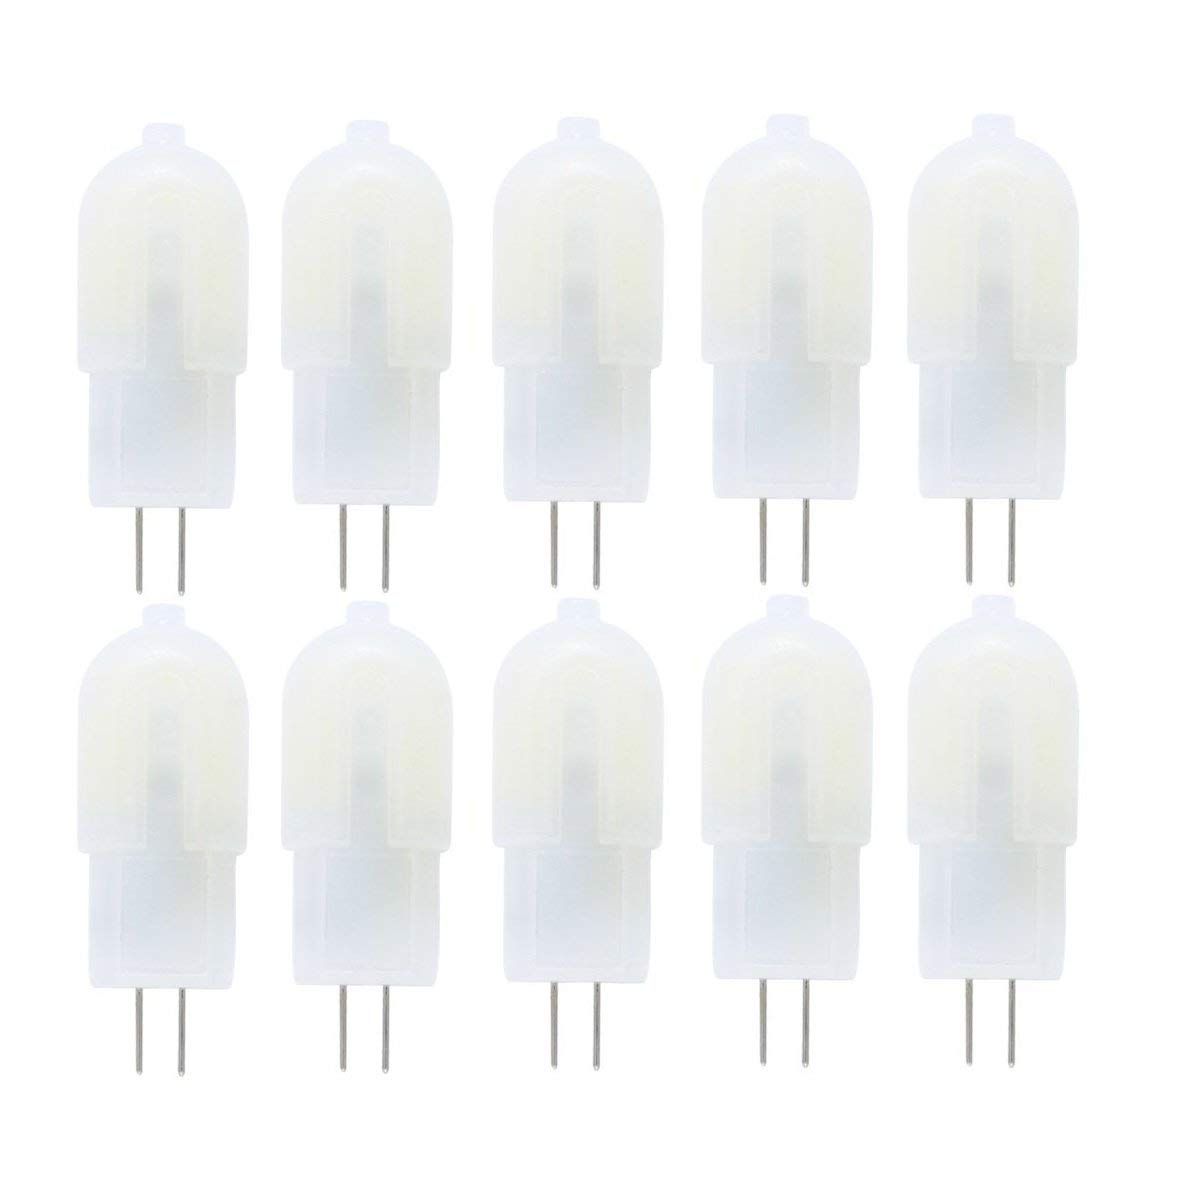 Vlio G4 LED Bulbs, 10 Pack 3W 18 LED 2835SMD Replace 30W Halogen Bulbs, DC/AC 12V, Non-Dimmable Capsule Light Bulbs, 240LM 6000K Cool White, 360 Degree Beam Angle